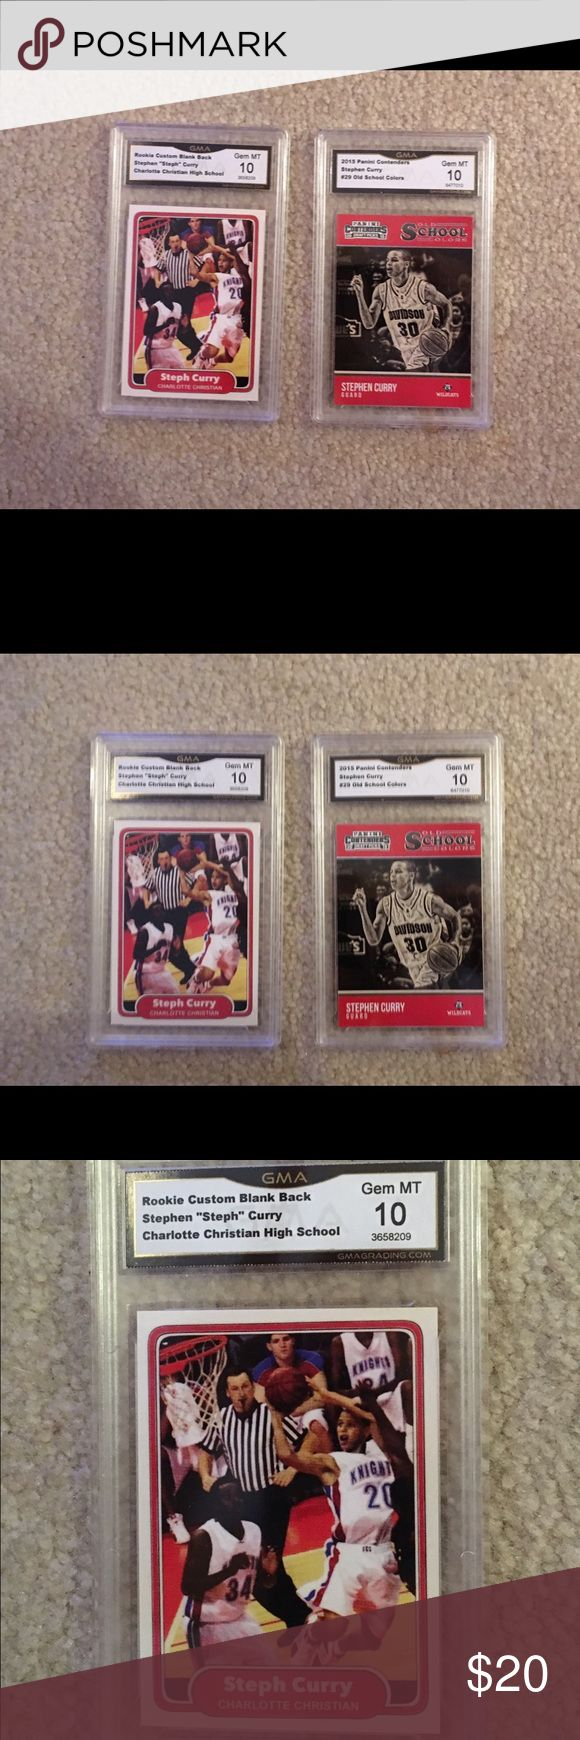 2 Vintage Stephen Curry high school cards Rare. Price firm Accessories